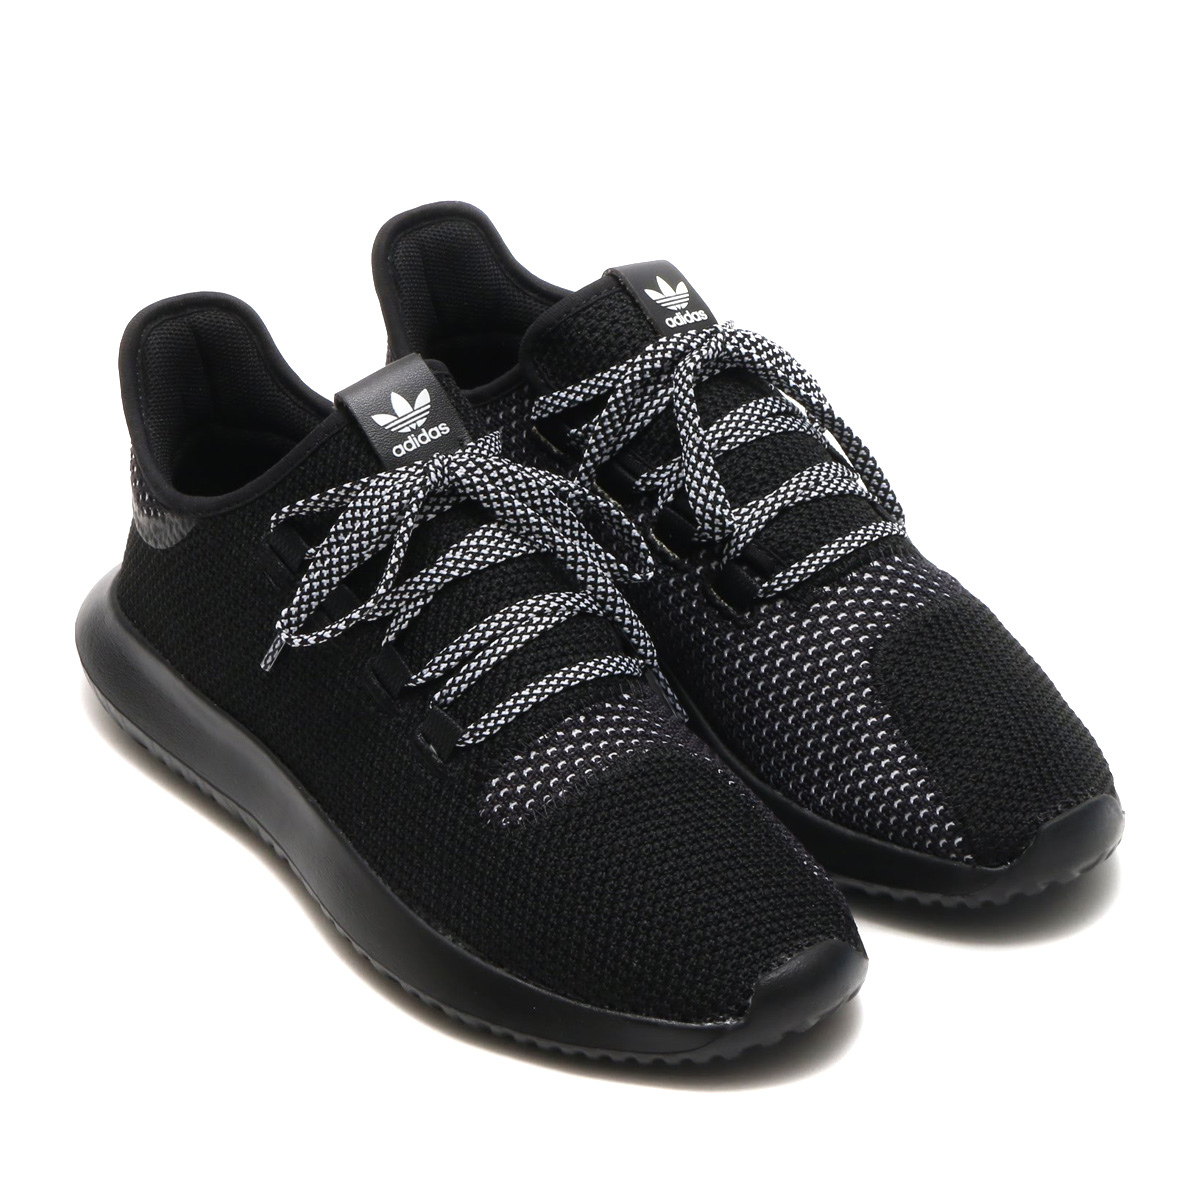 adidas Originals TUBULAR SHADOW CK(アディダス オリジナルス チュブラー シャドウ CK) Core Black/Core Black/Ftwr White18SP-S